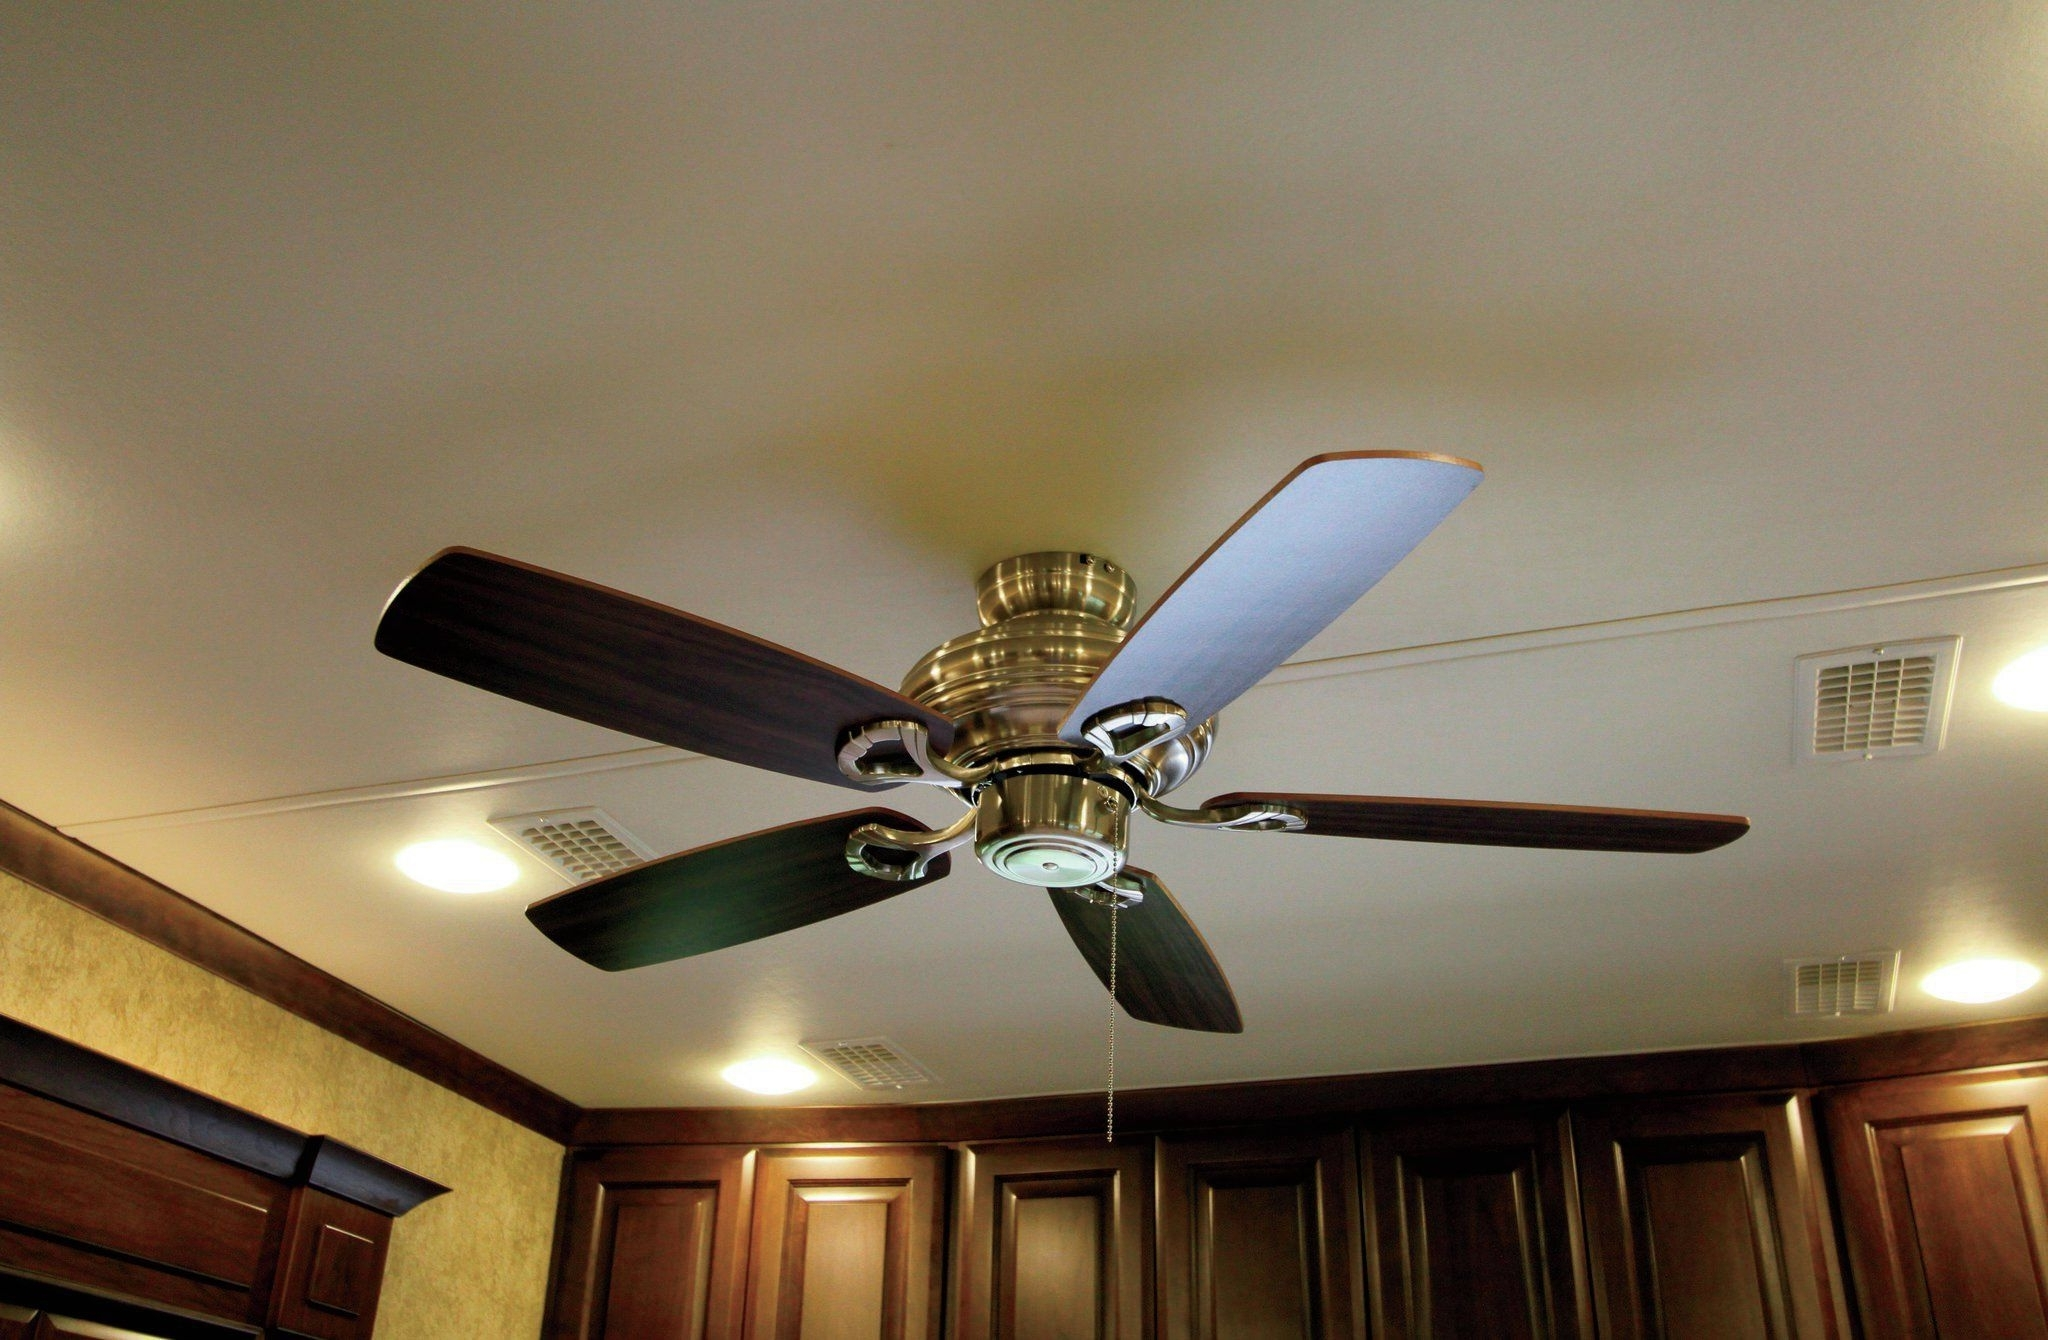 44 Inch Outdoor Ceiling Fans With Lights Within Most Current Bedroom Bedroom Ceiling Fans With Remote 44 Inch Outdoor Ceiling (Gallery 20 of 20)